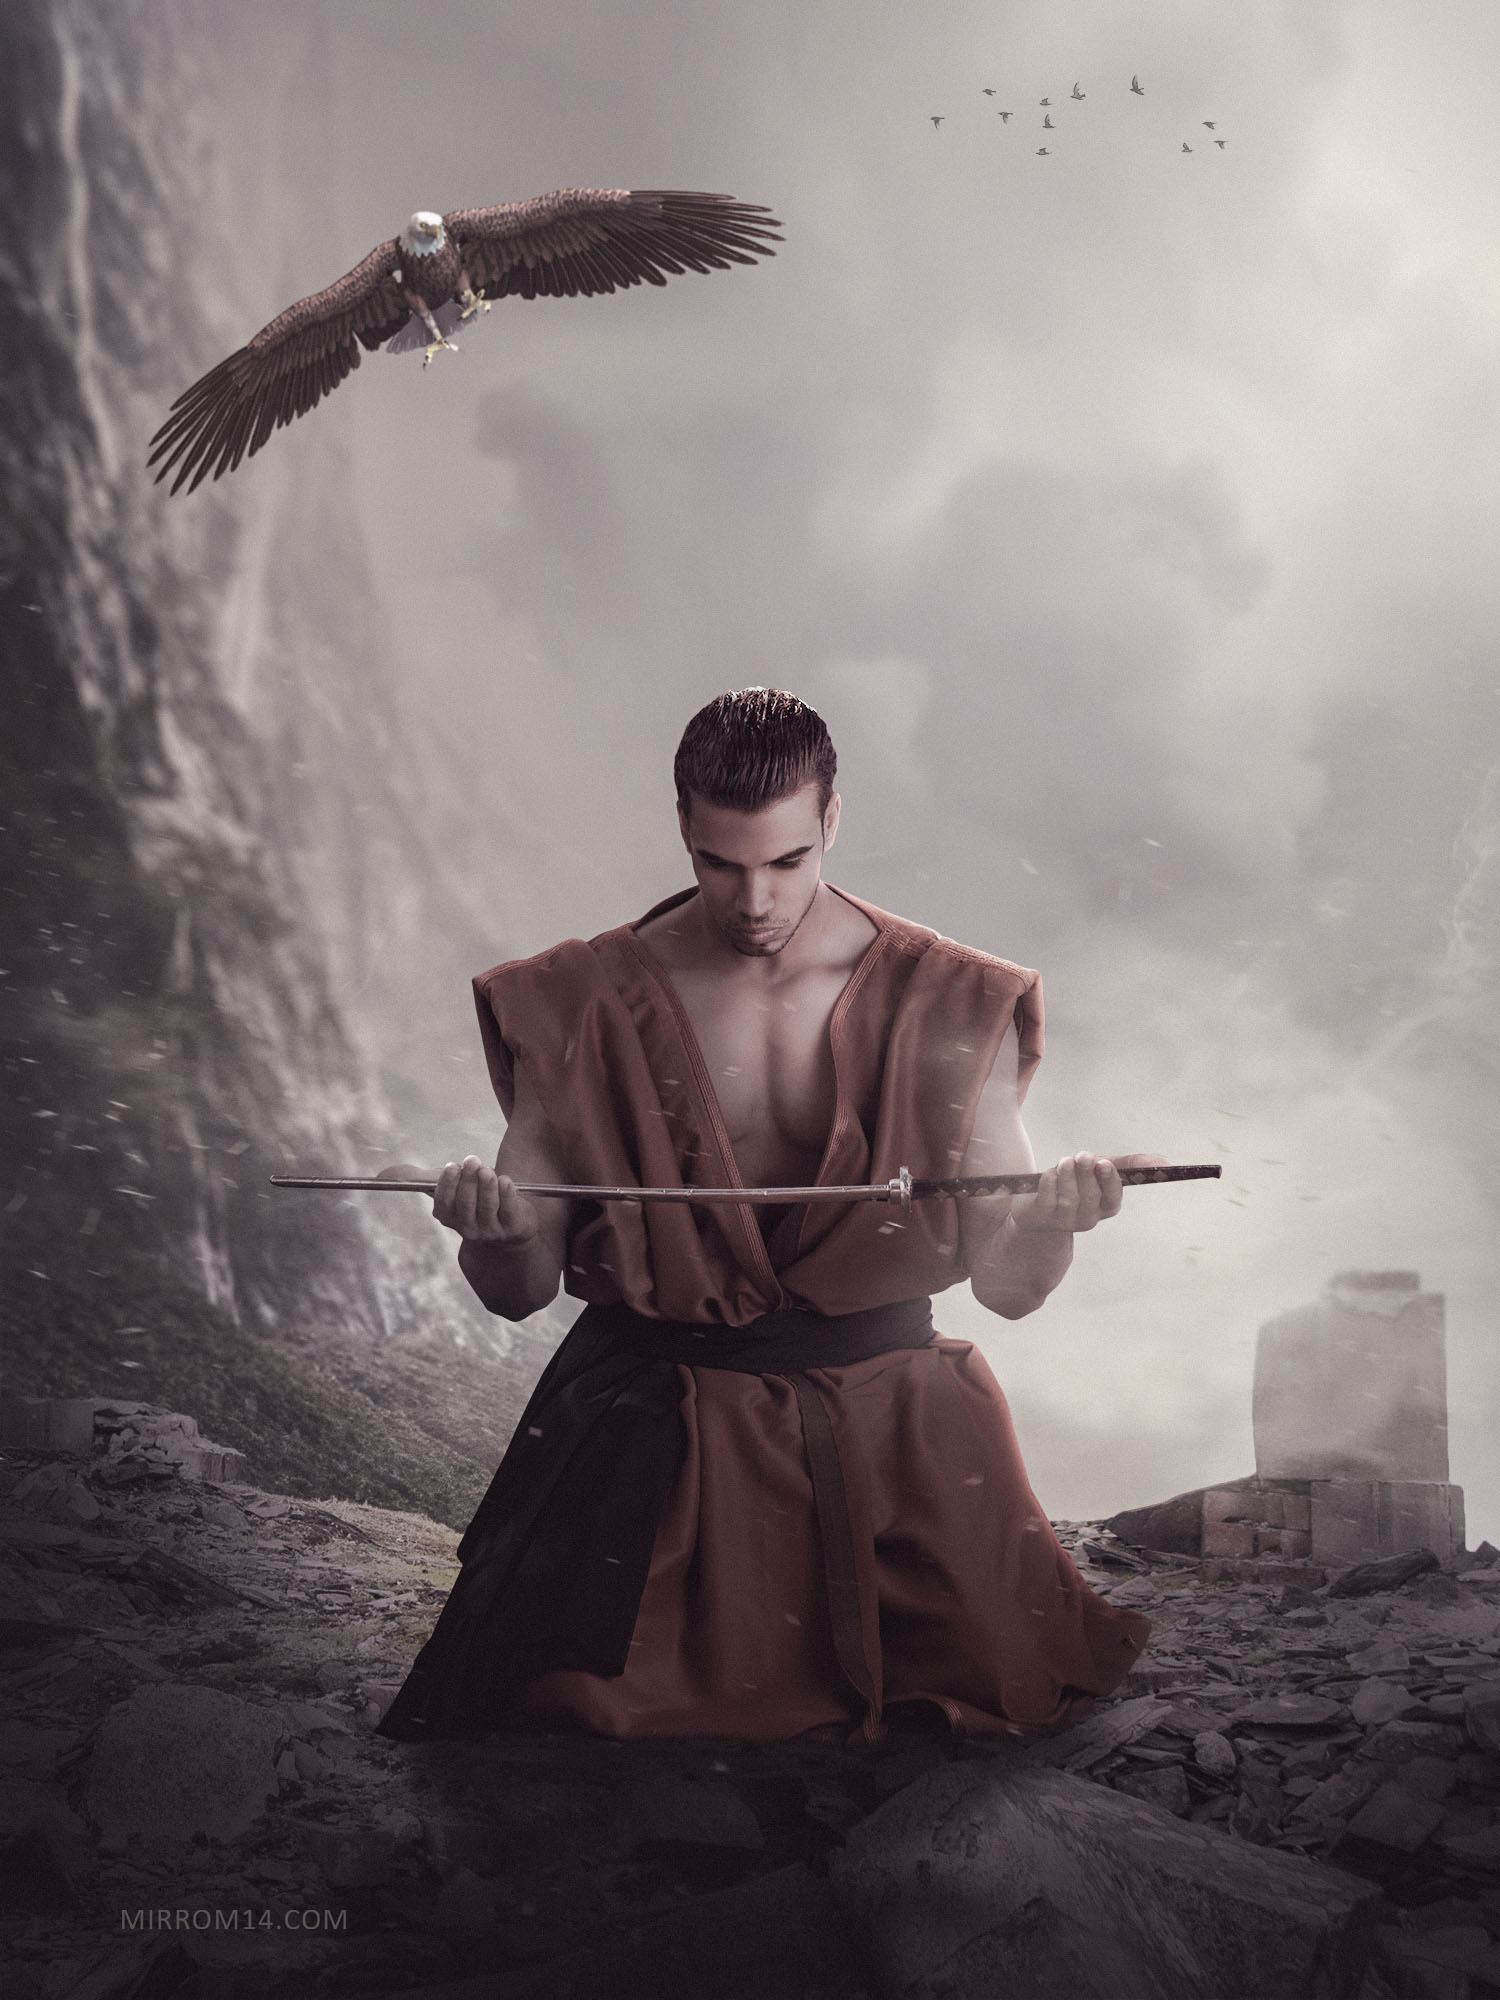 Eagle Sword Photo Manipulation in Photoshop